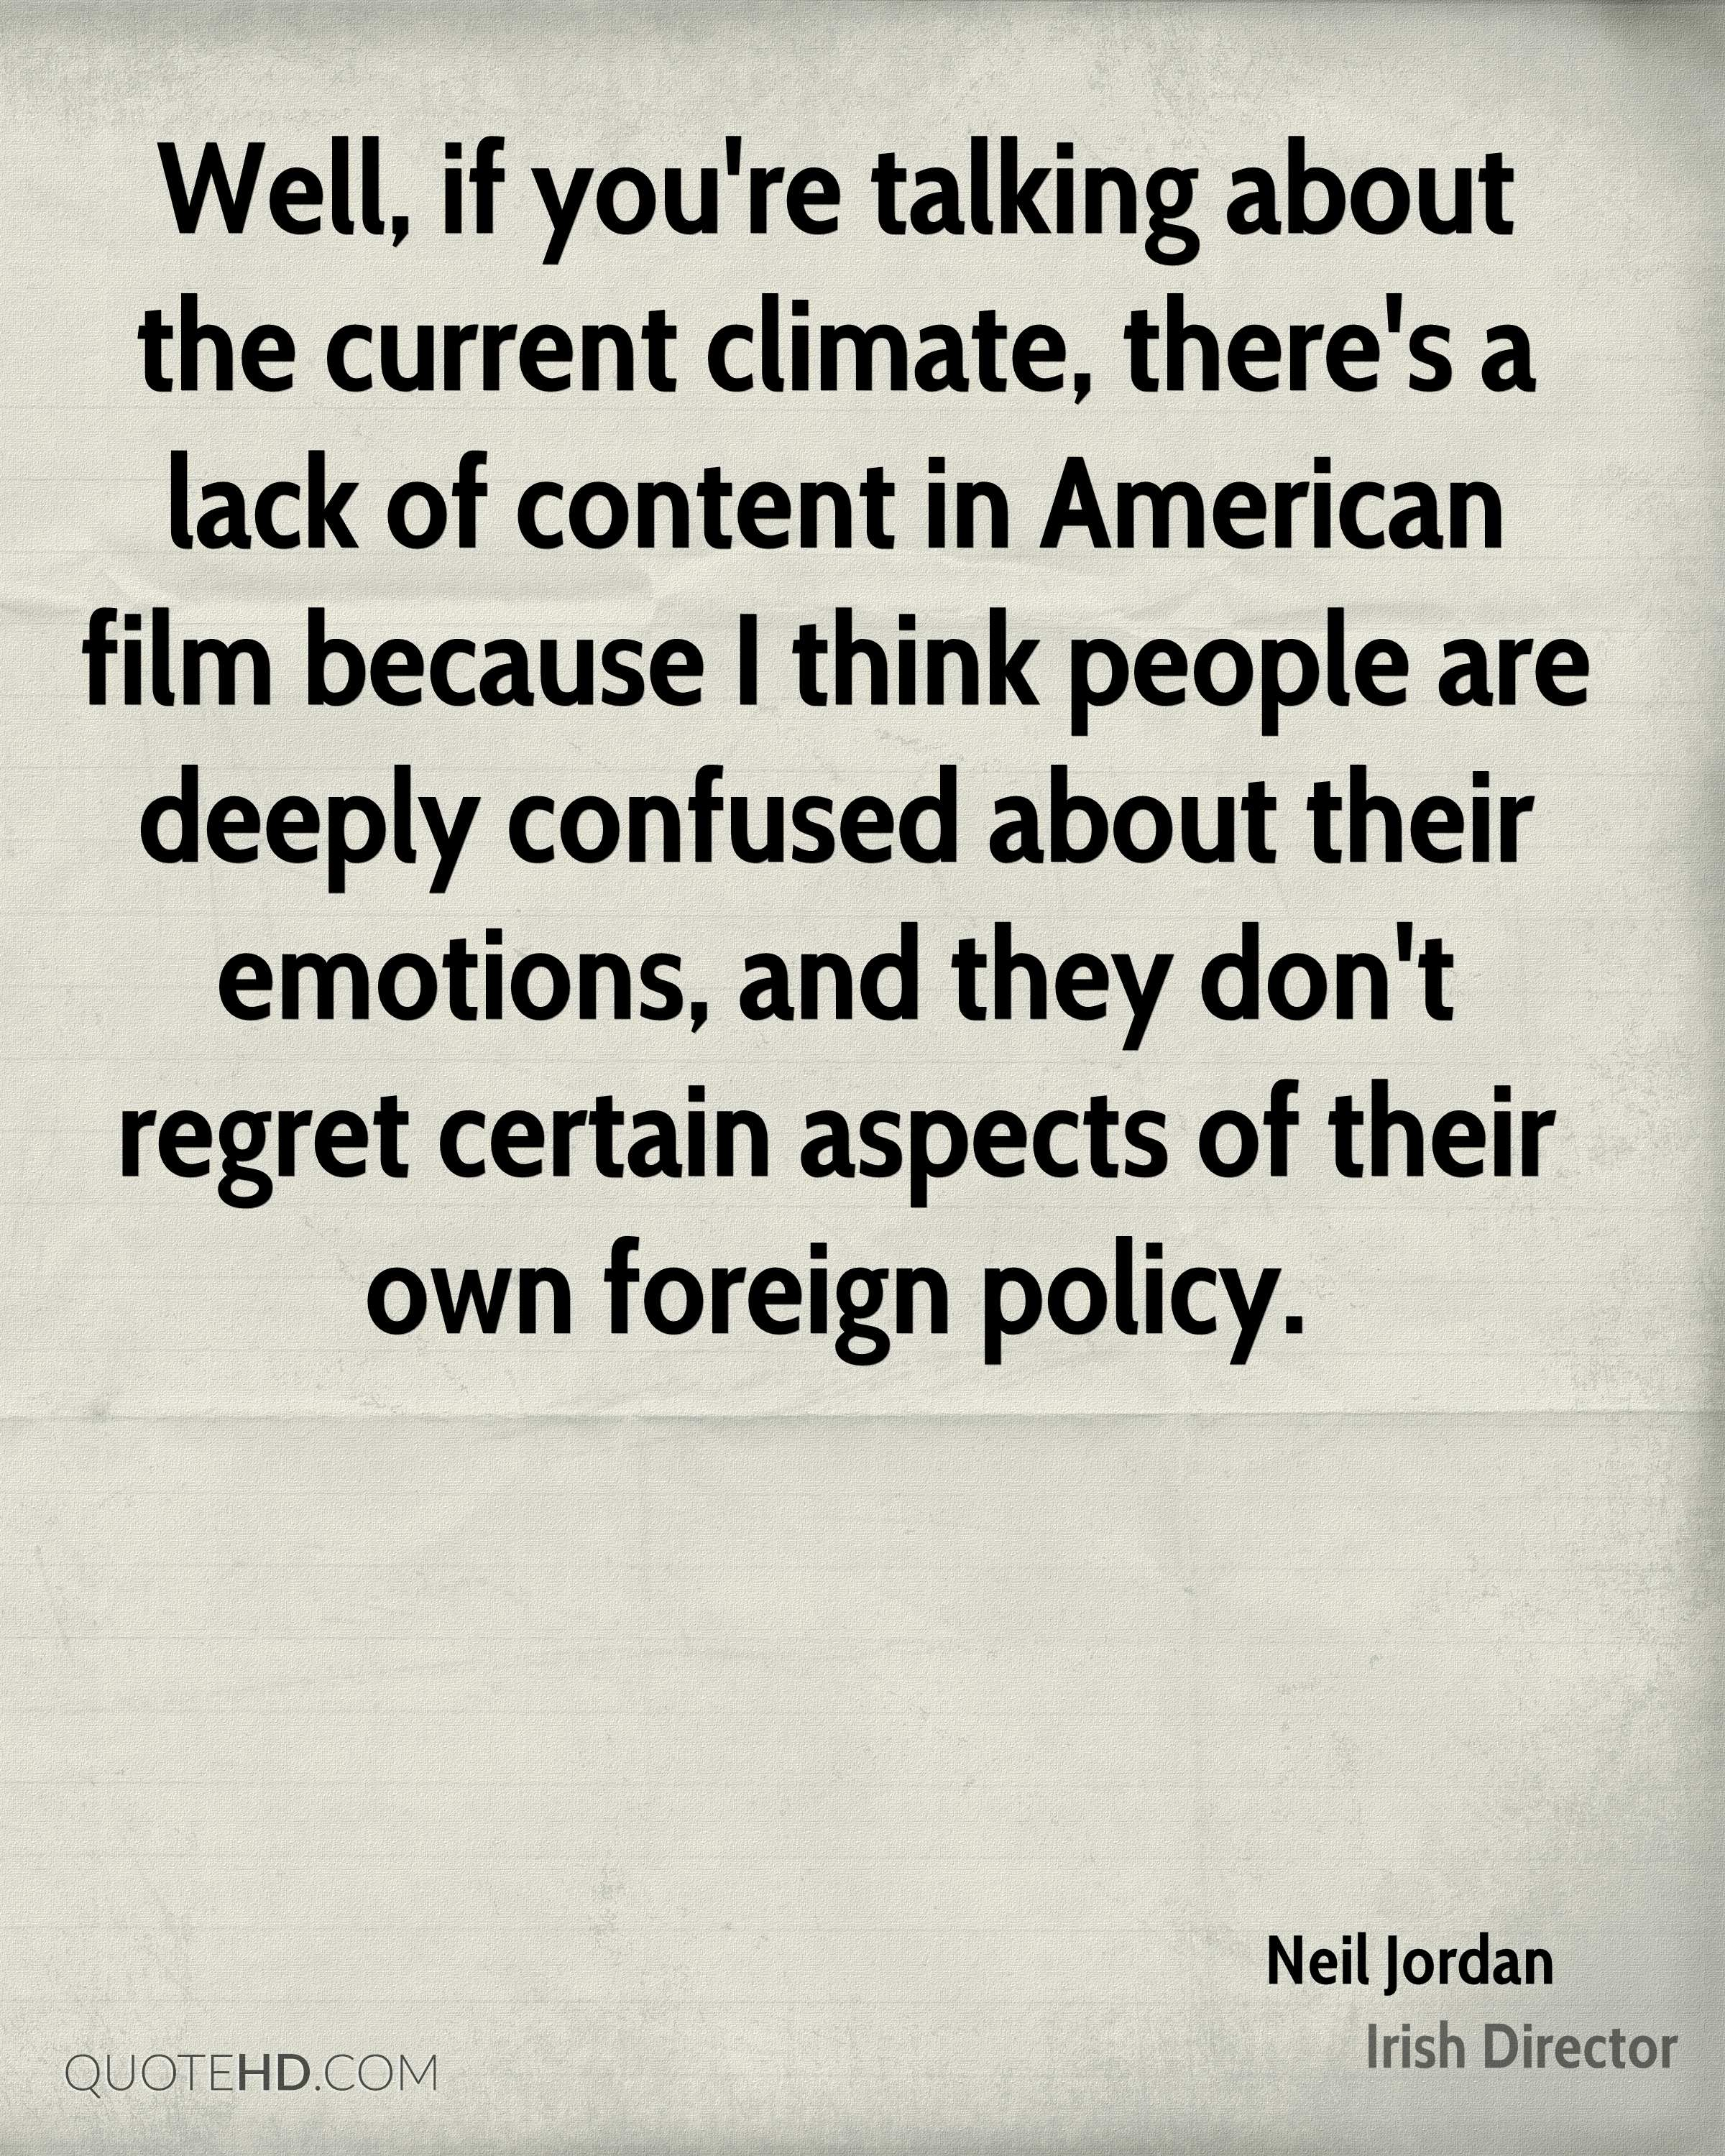 Well, if you're talking about the current climate, there's a lack of content in American film because I think people are deeply confused about their emotions, and they don't regret certain aspects of their own foreign policy.